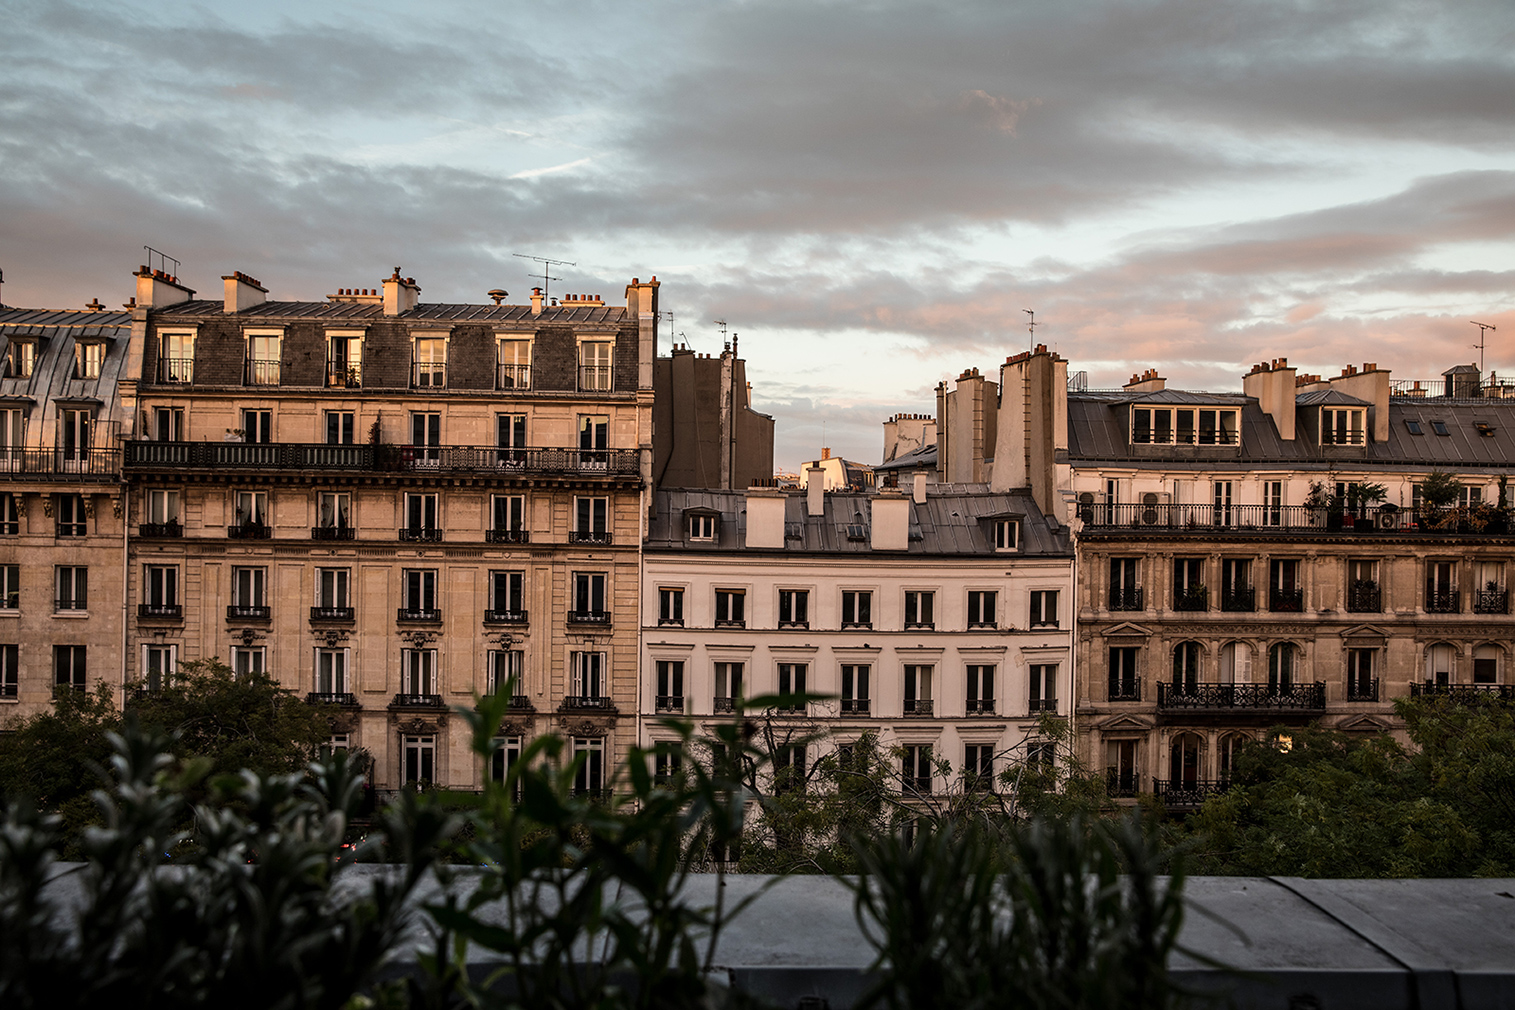 Paris' Hotel des Grands Boulevards channels the French Revolutionary spirit